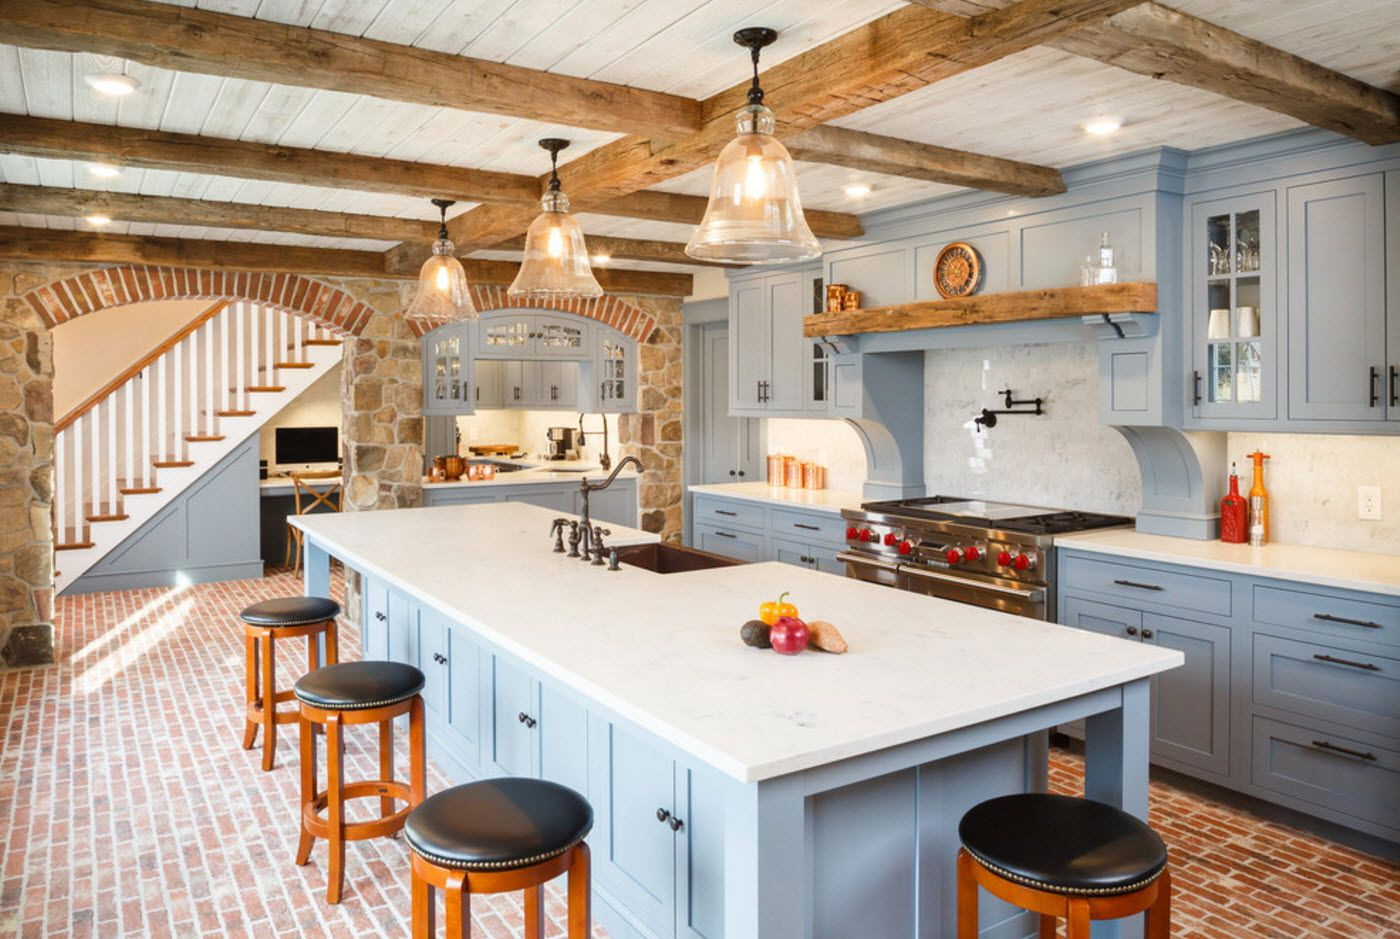 Modern rustic style with open ceiling beams